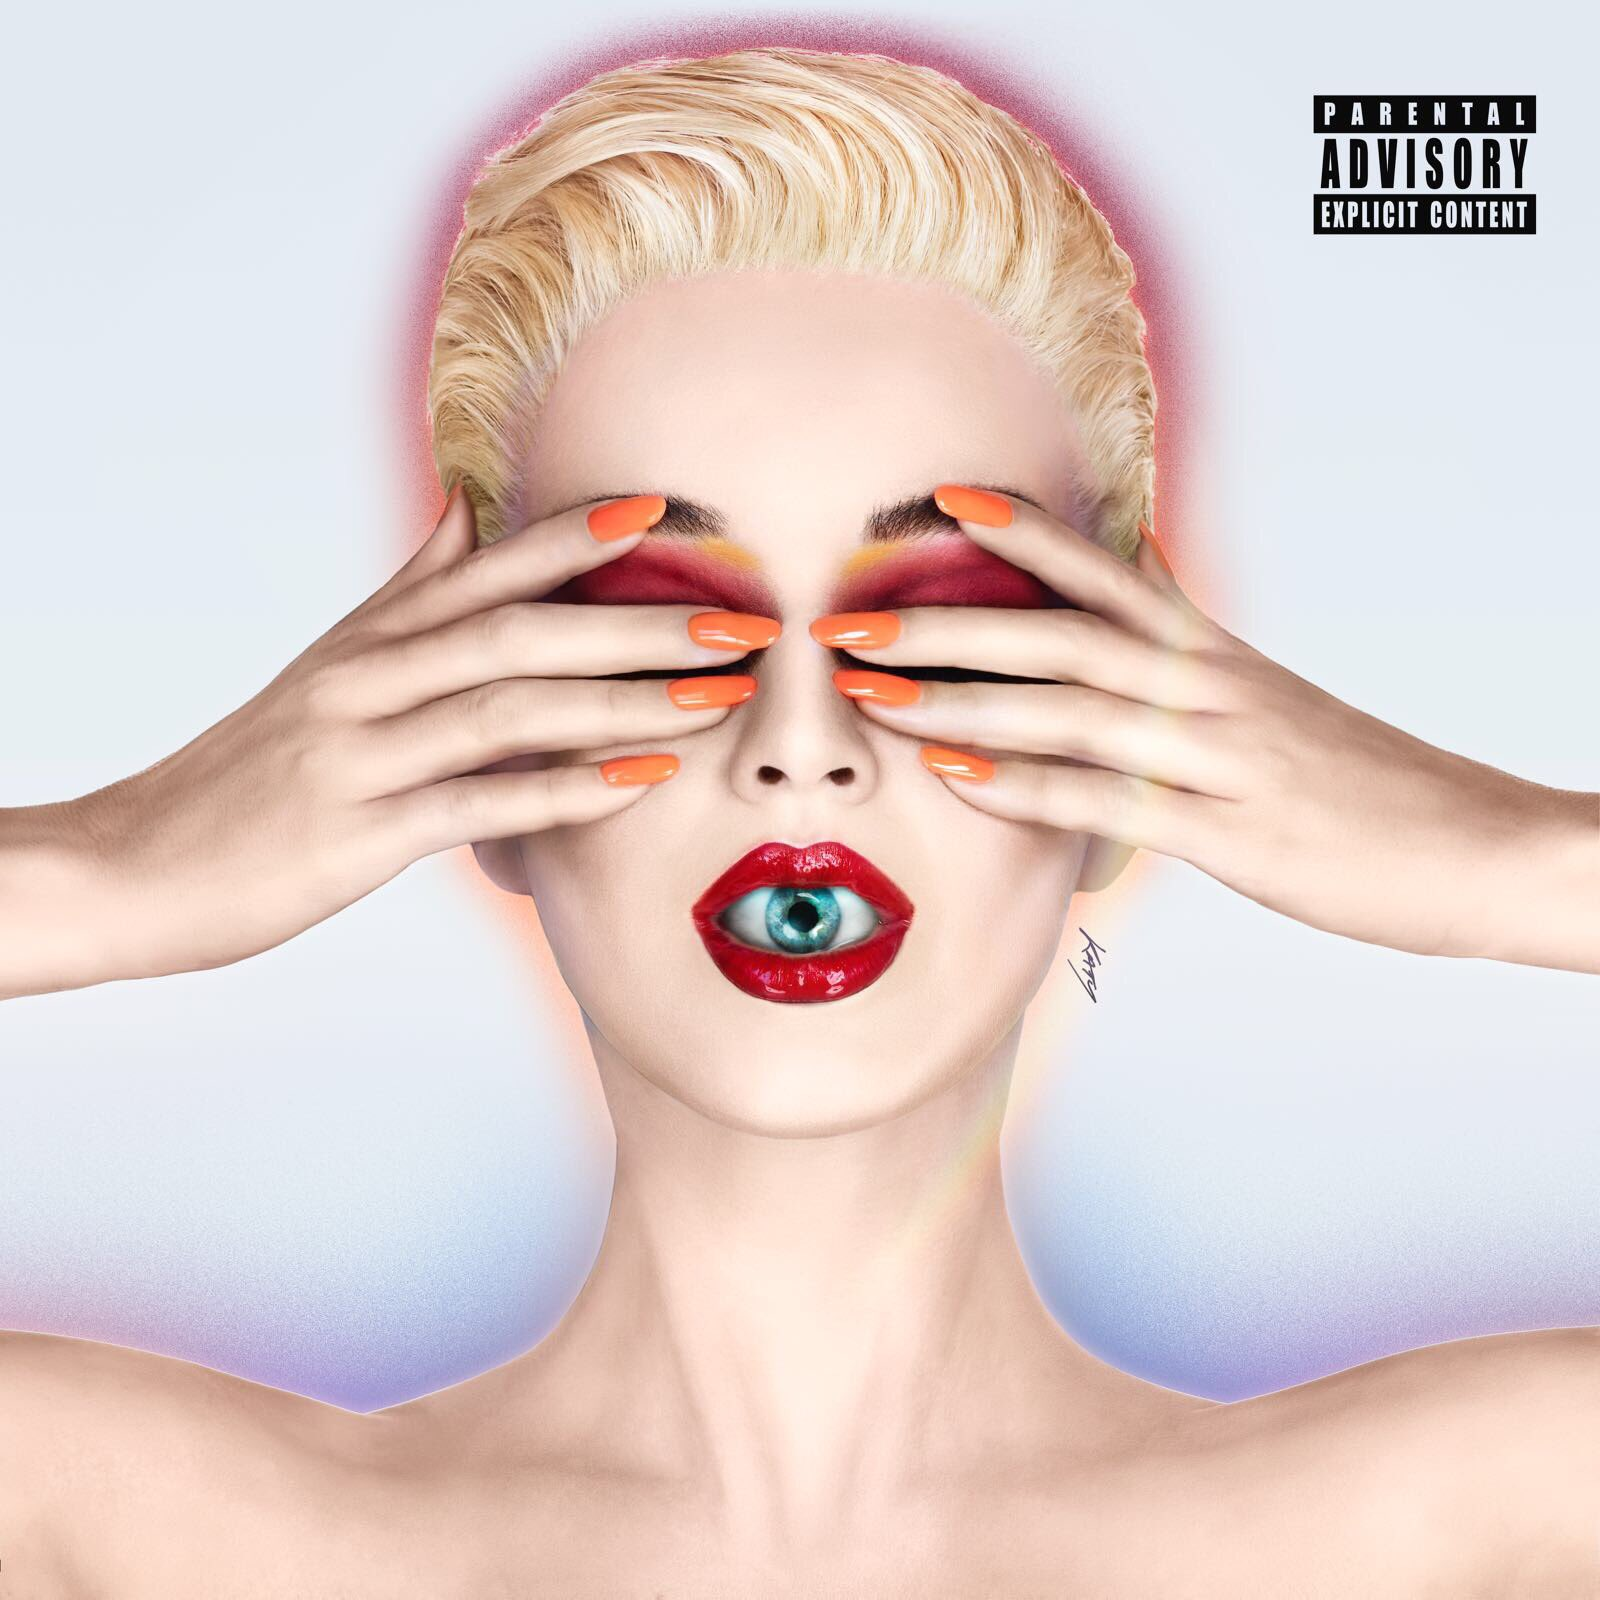 20 minutes till you can preorder #WITNESS and get #SWISHSWISH ft. @NICKIMINAJ ☄️ https://t.co/idiGgECiDj